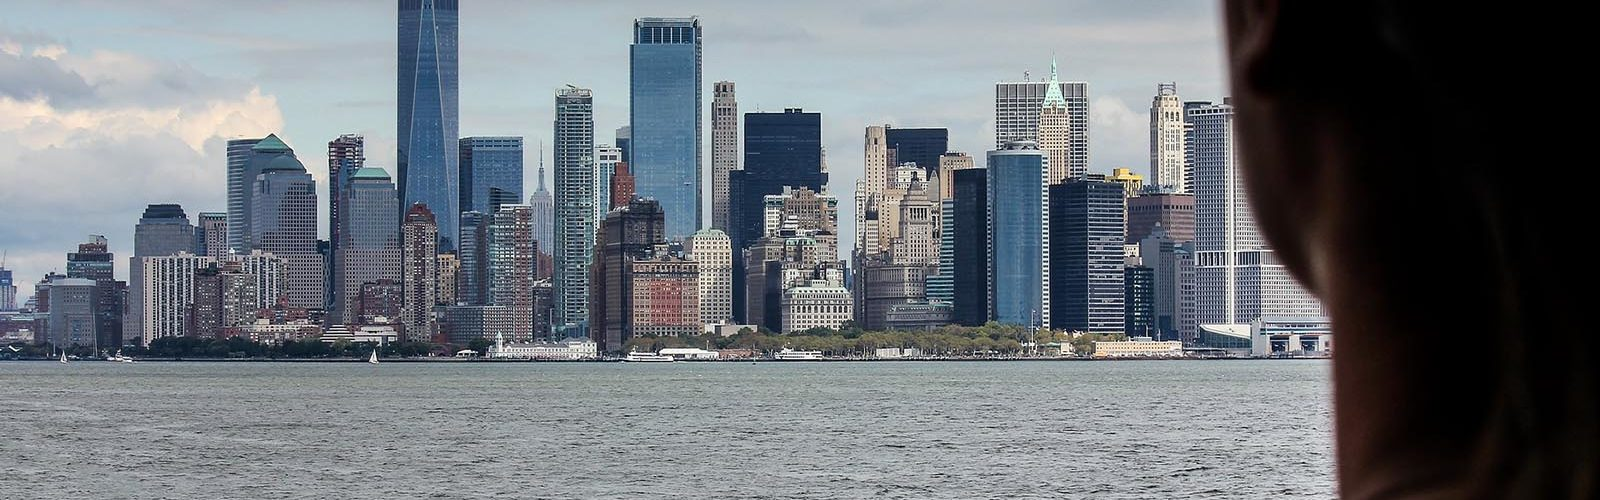 visiter-new-york-musee-soiree-croisiere-helicoptere-new-une